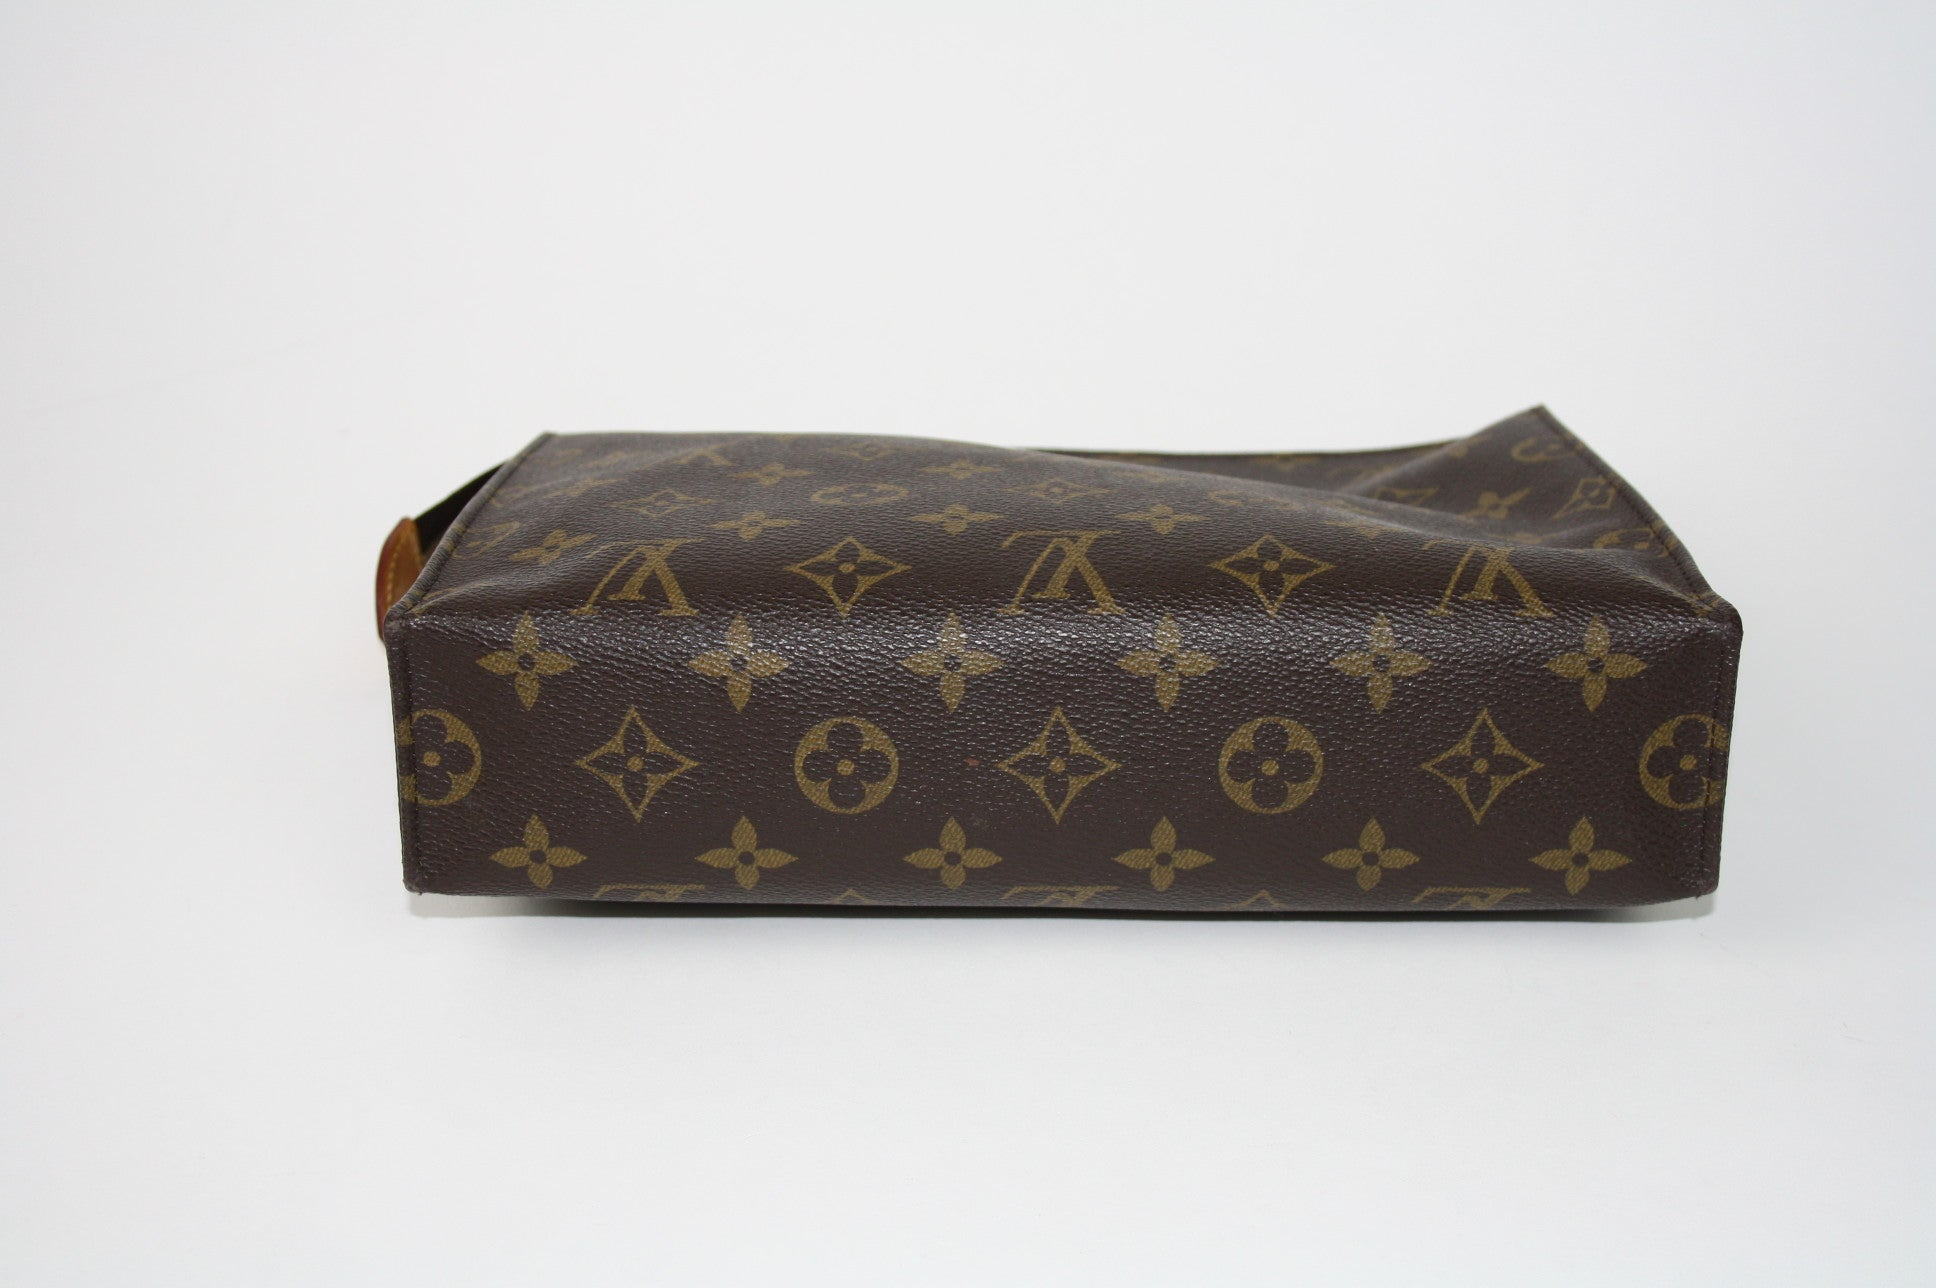 Louis Vuitton Toiletry 26 - Iconics Preloved Luxury